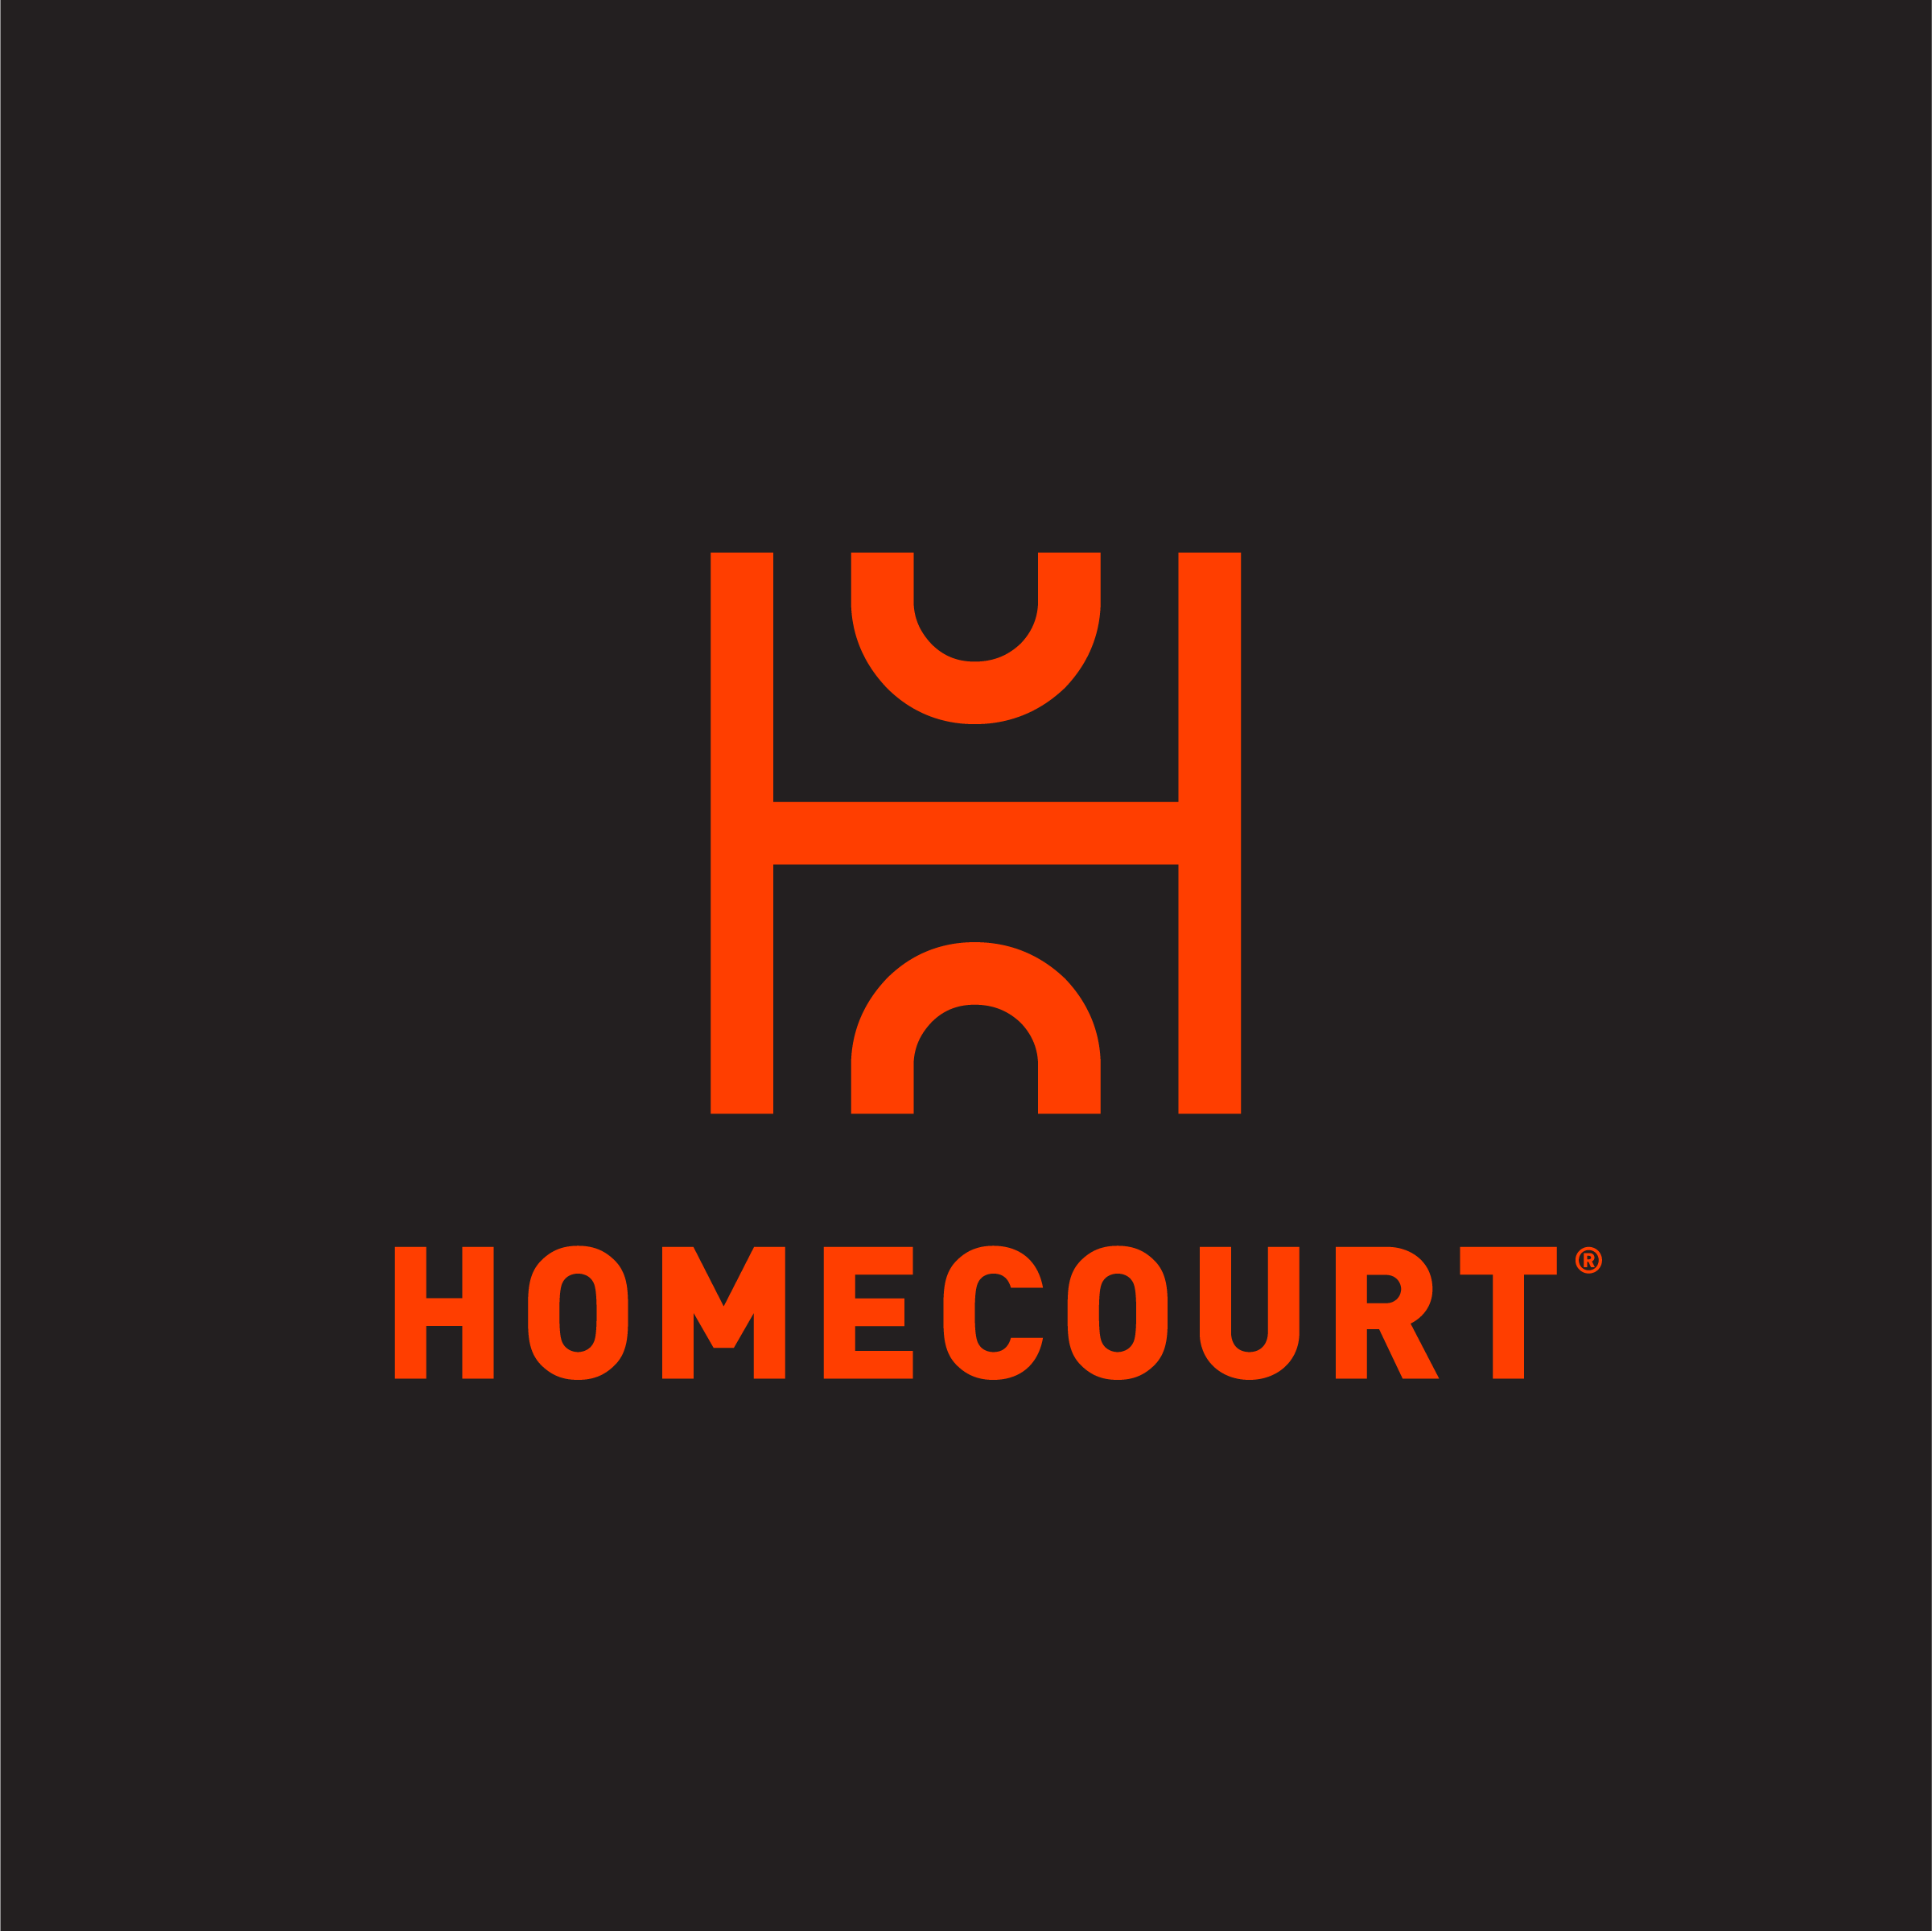 Avoid using HomeCourt Orange on a dark background.